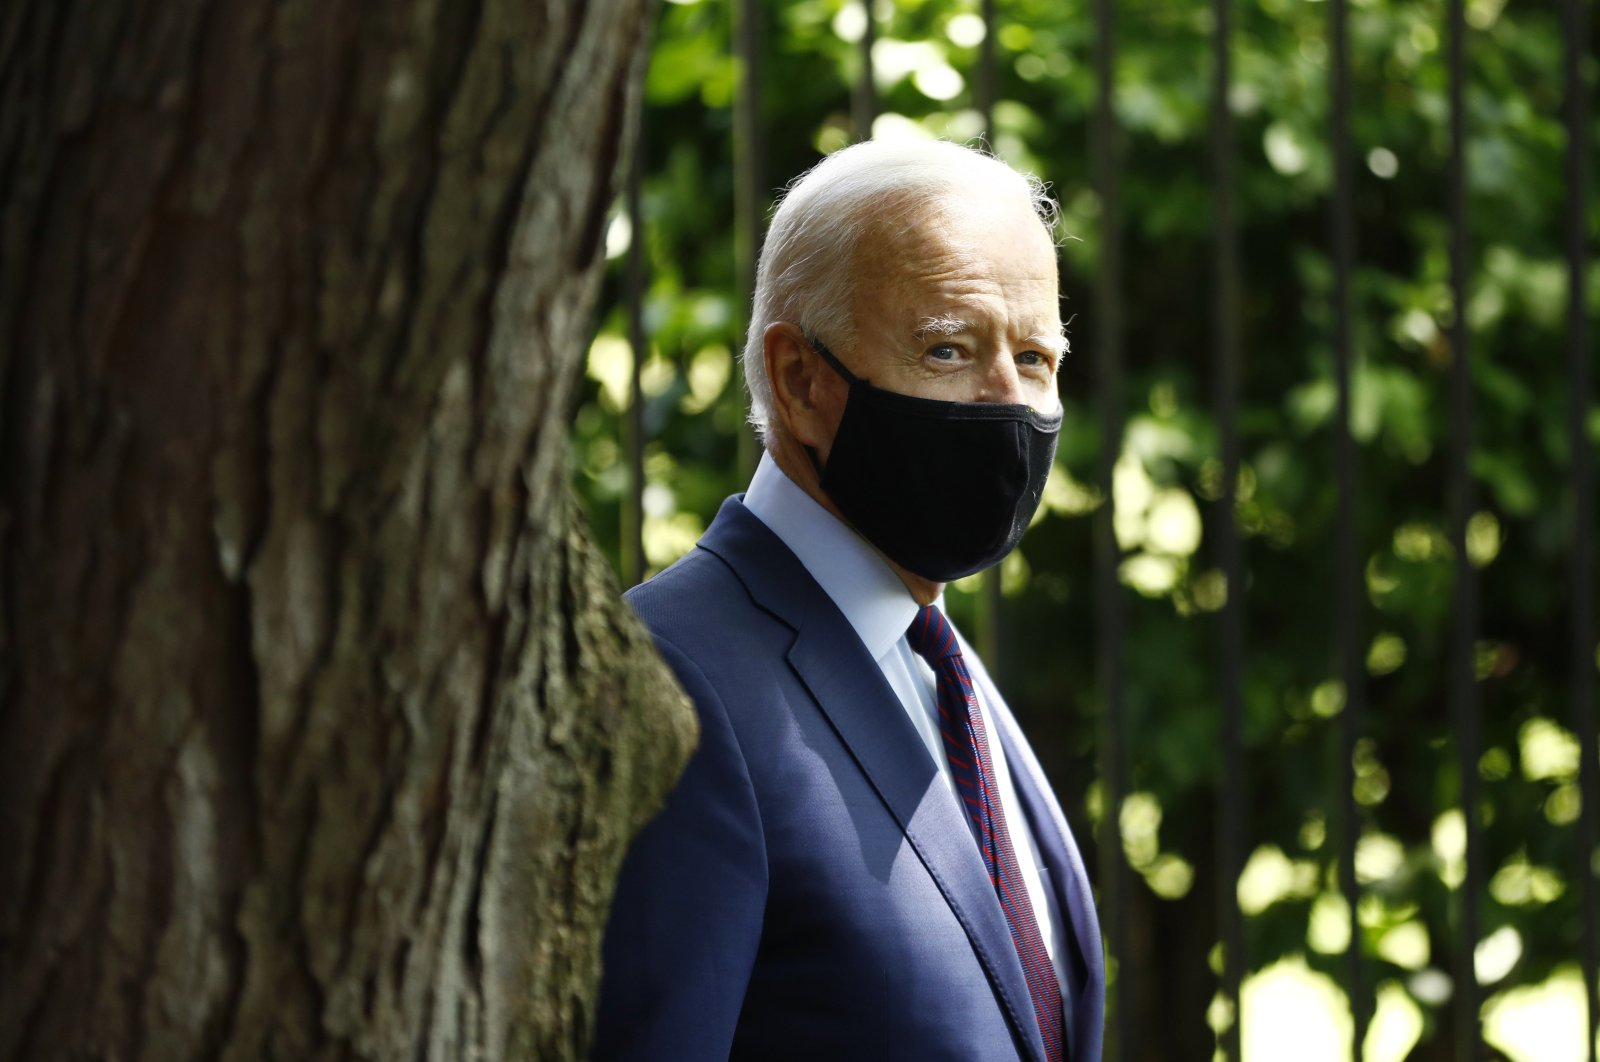 Democratic presidential candidate, former Vice President Joe Biden arrives to speak with families who have benefited from the Affordable Care Act, in Lancaster, Pa, June 25, 2020. (AP)